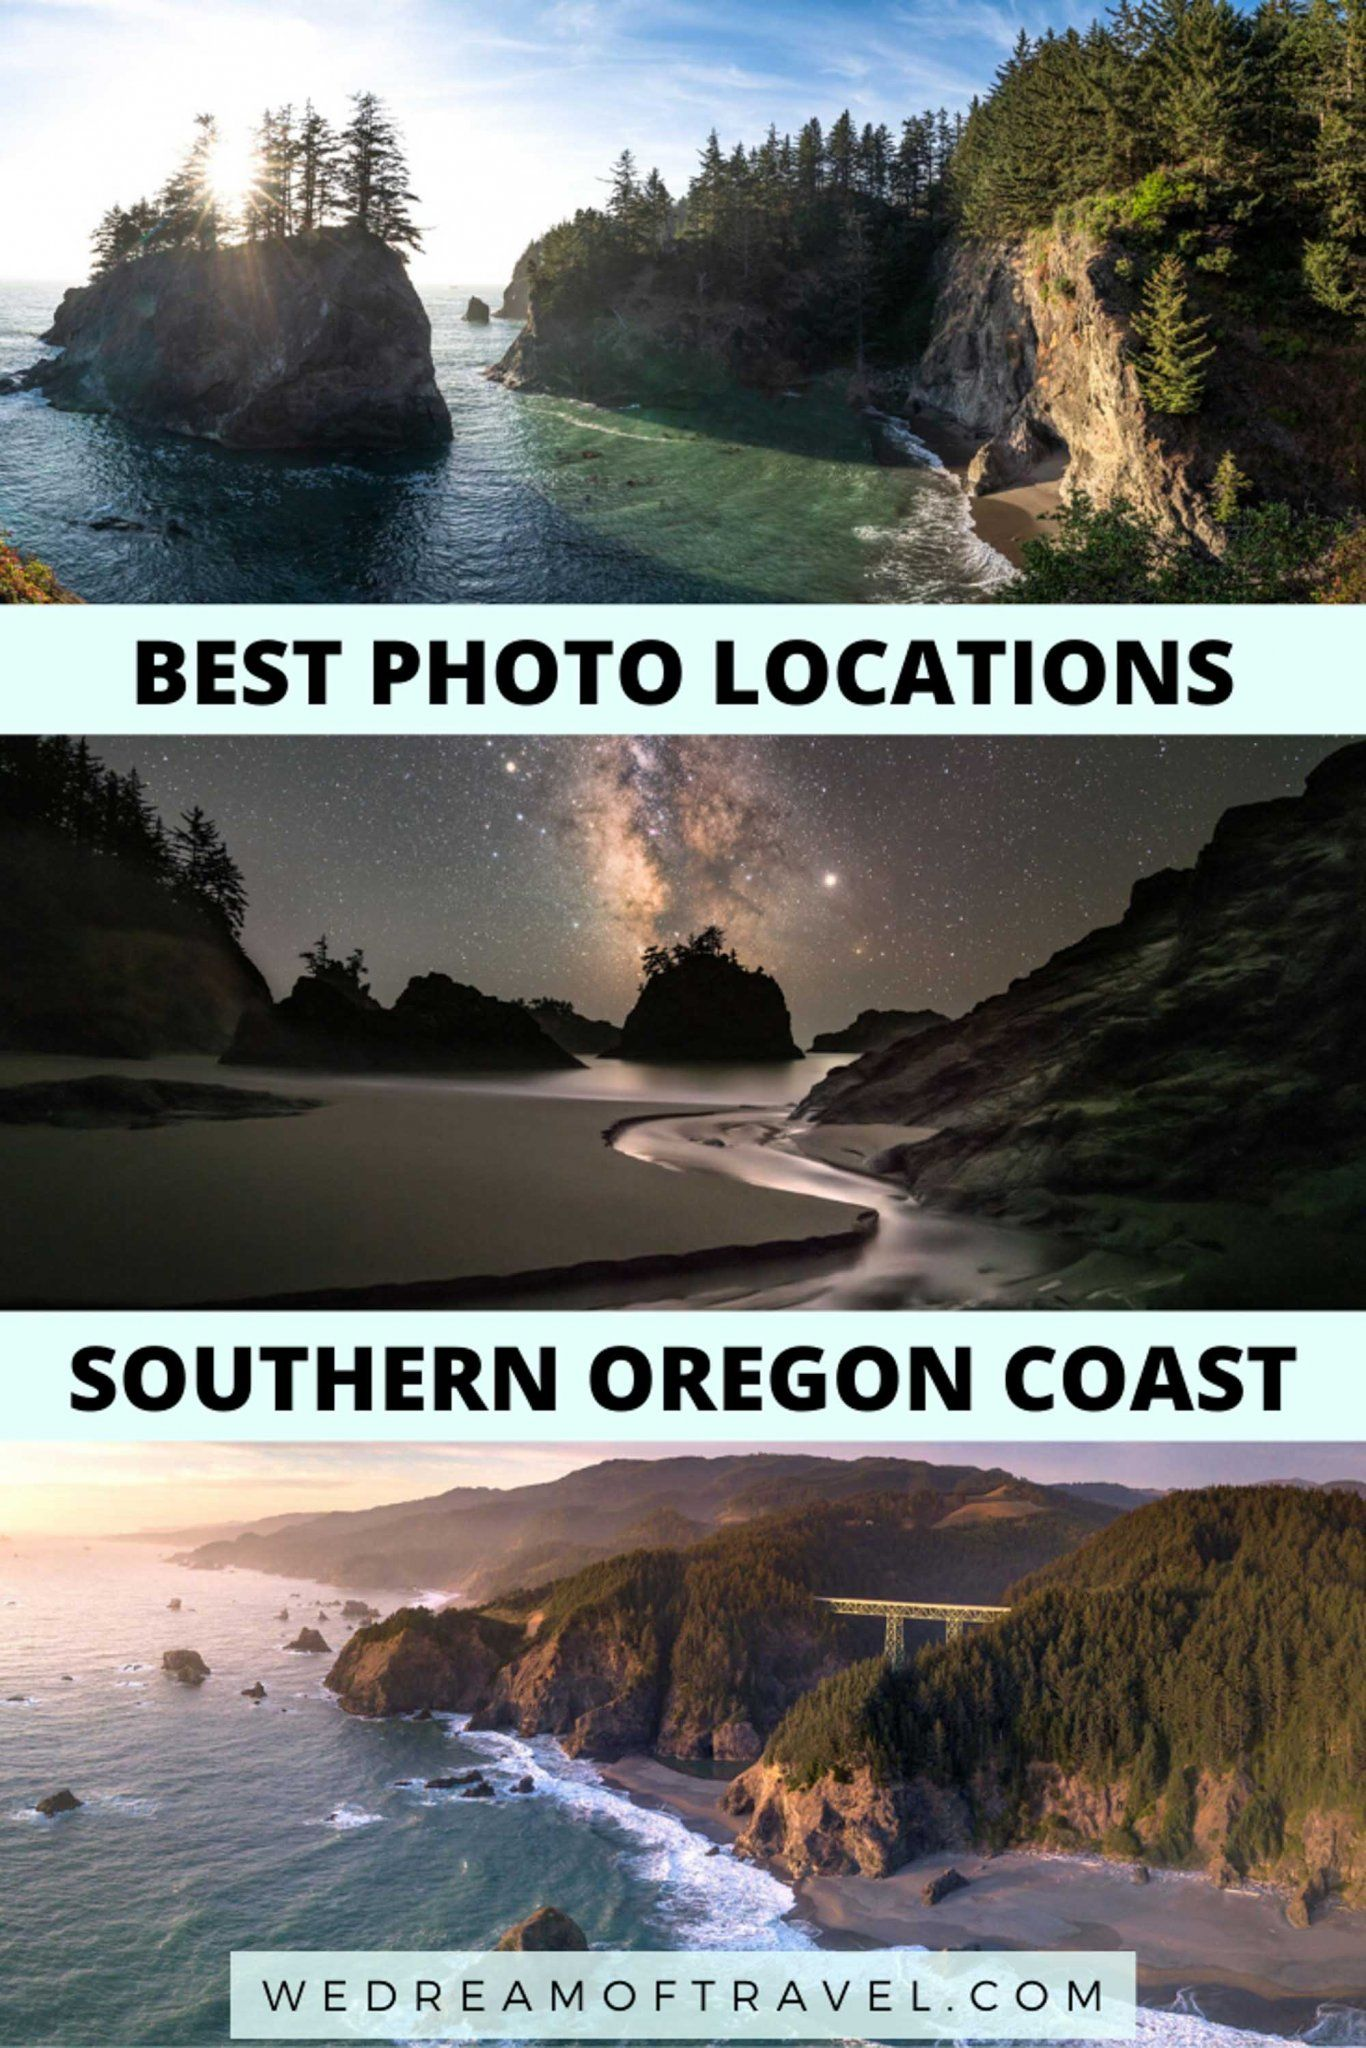 Best Photo Locations Southern Oregon Coast